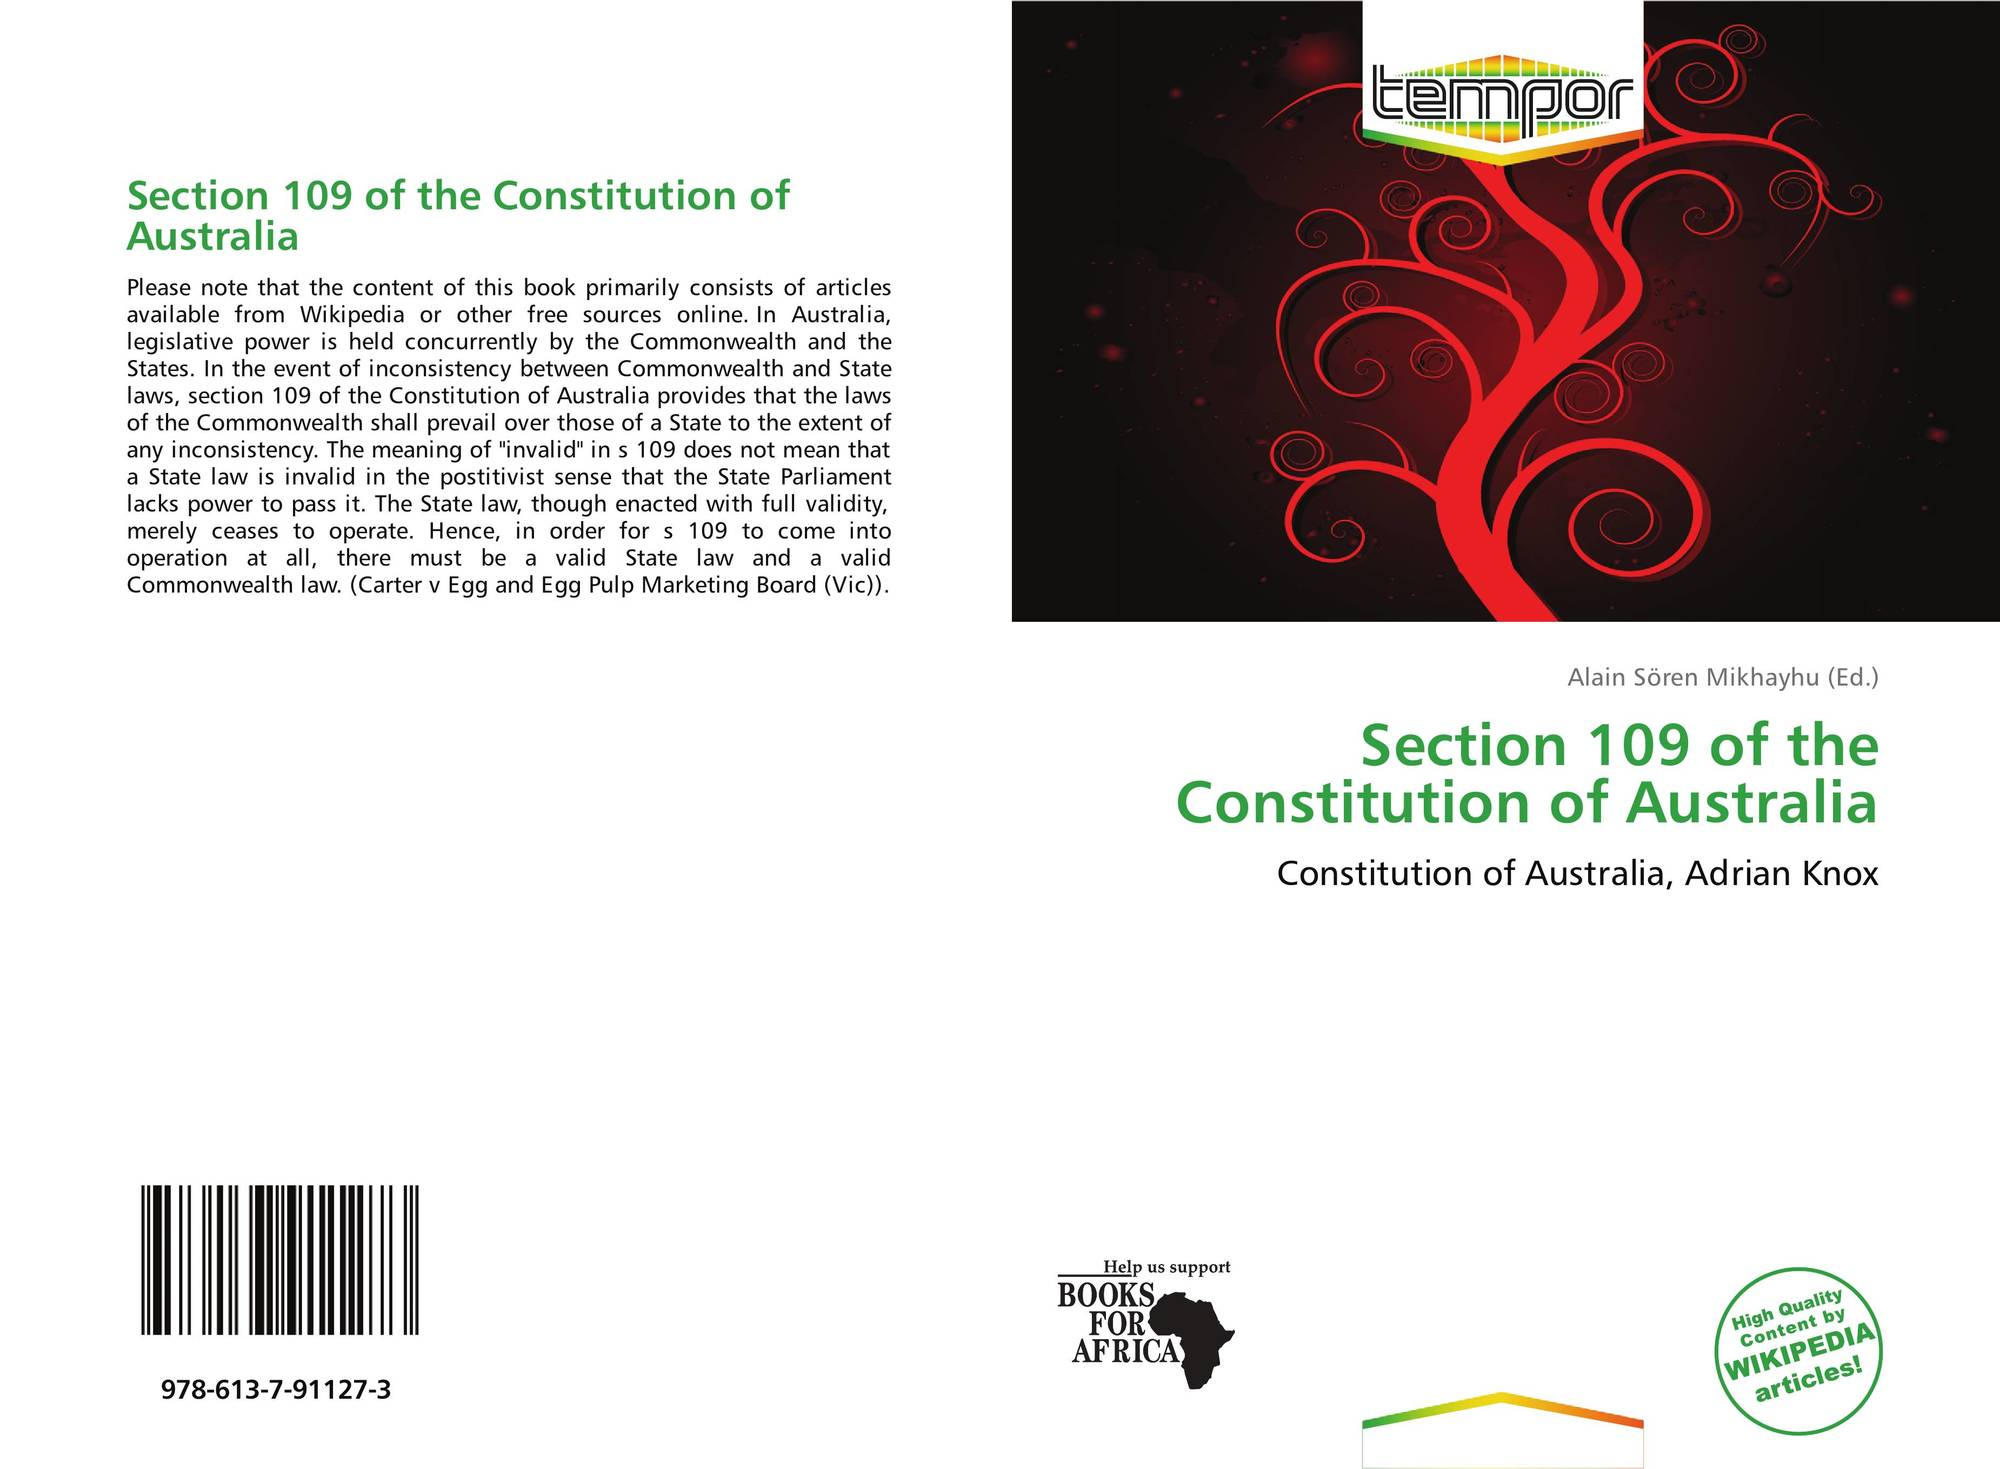 an analysis of the limits placed on commonwealth power under the australian constitution